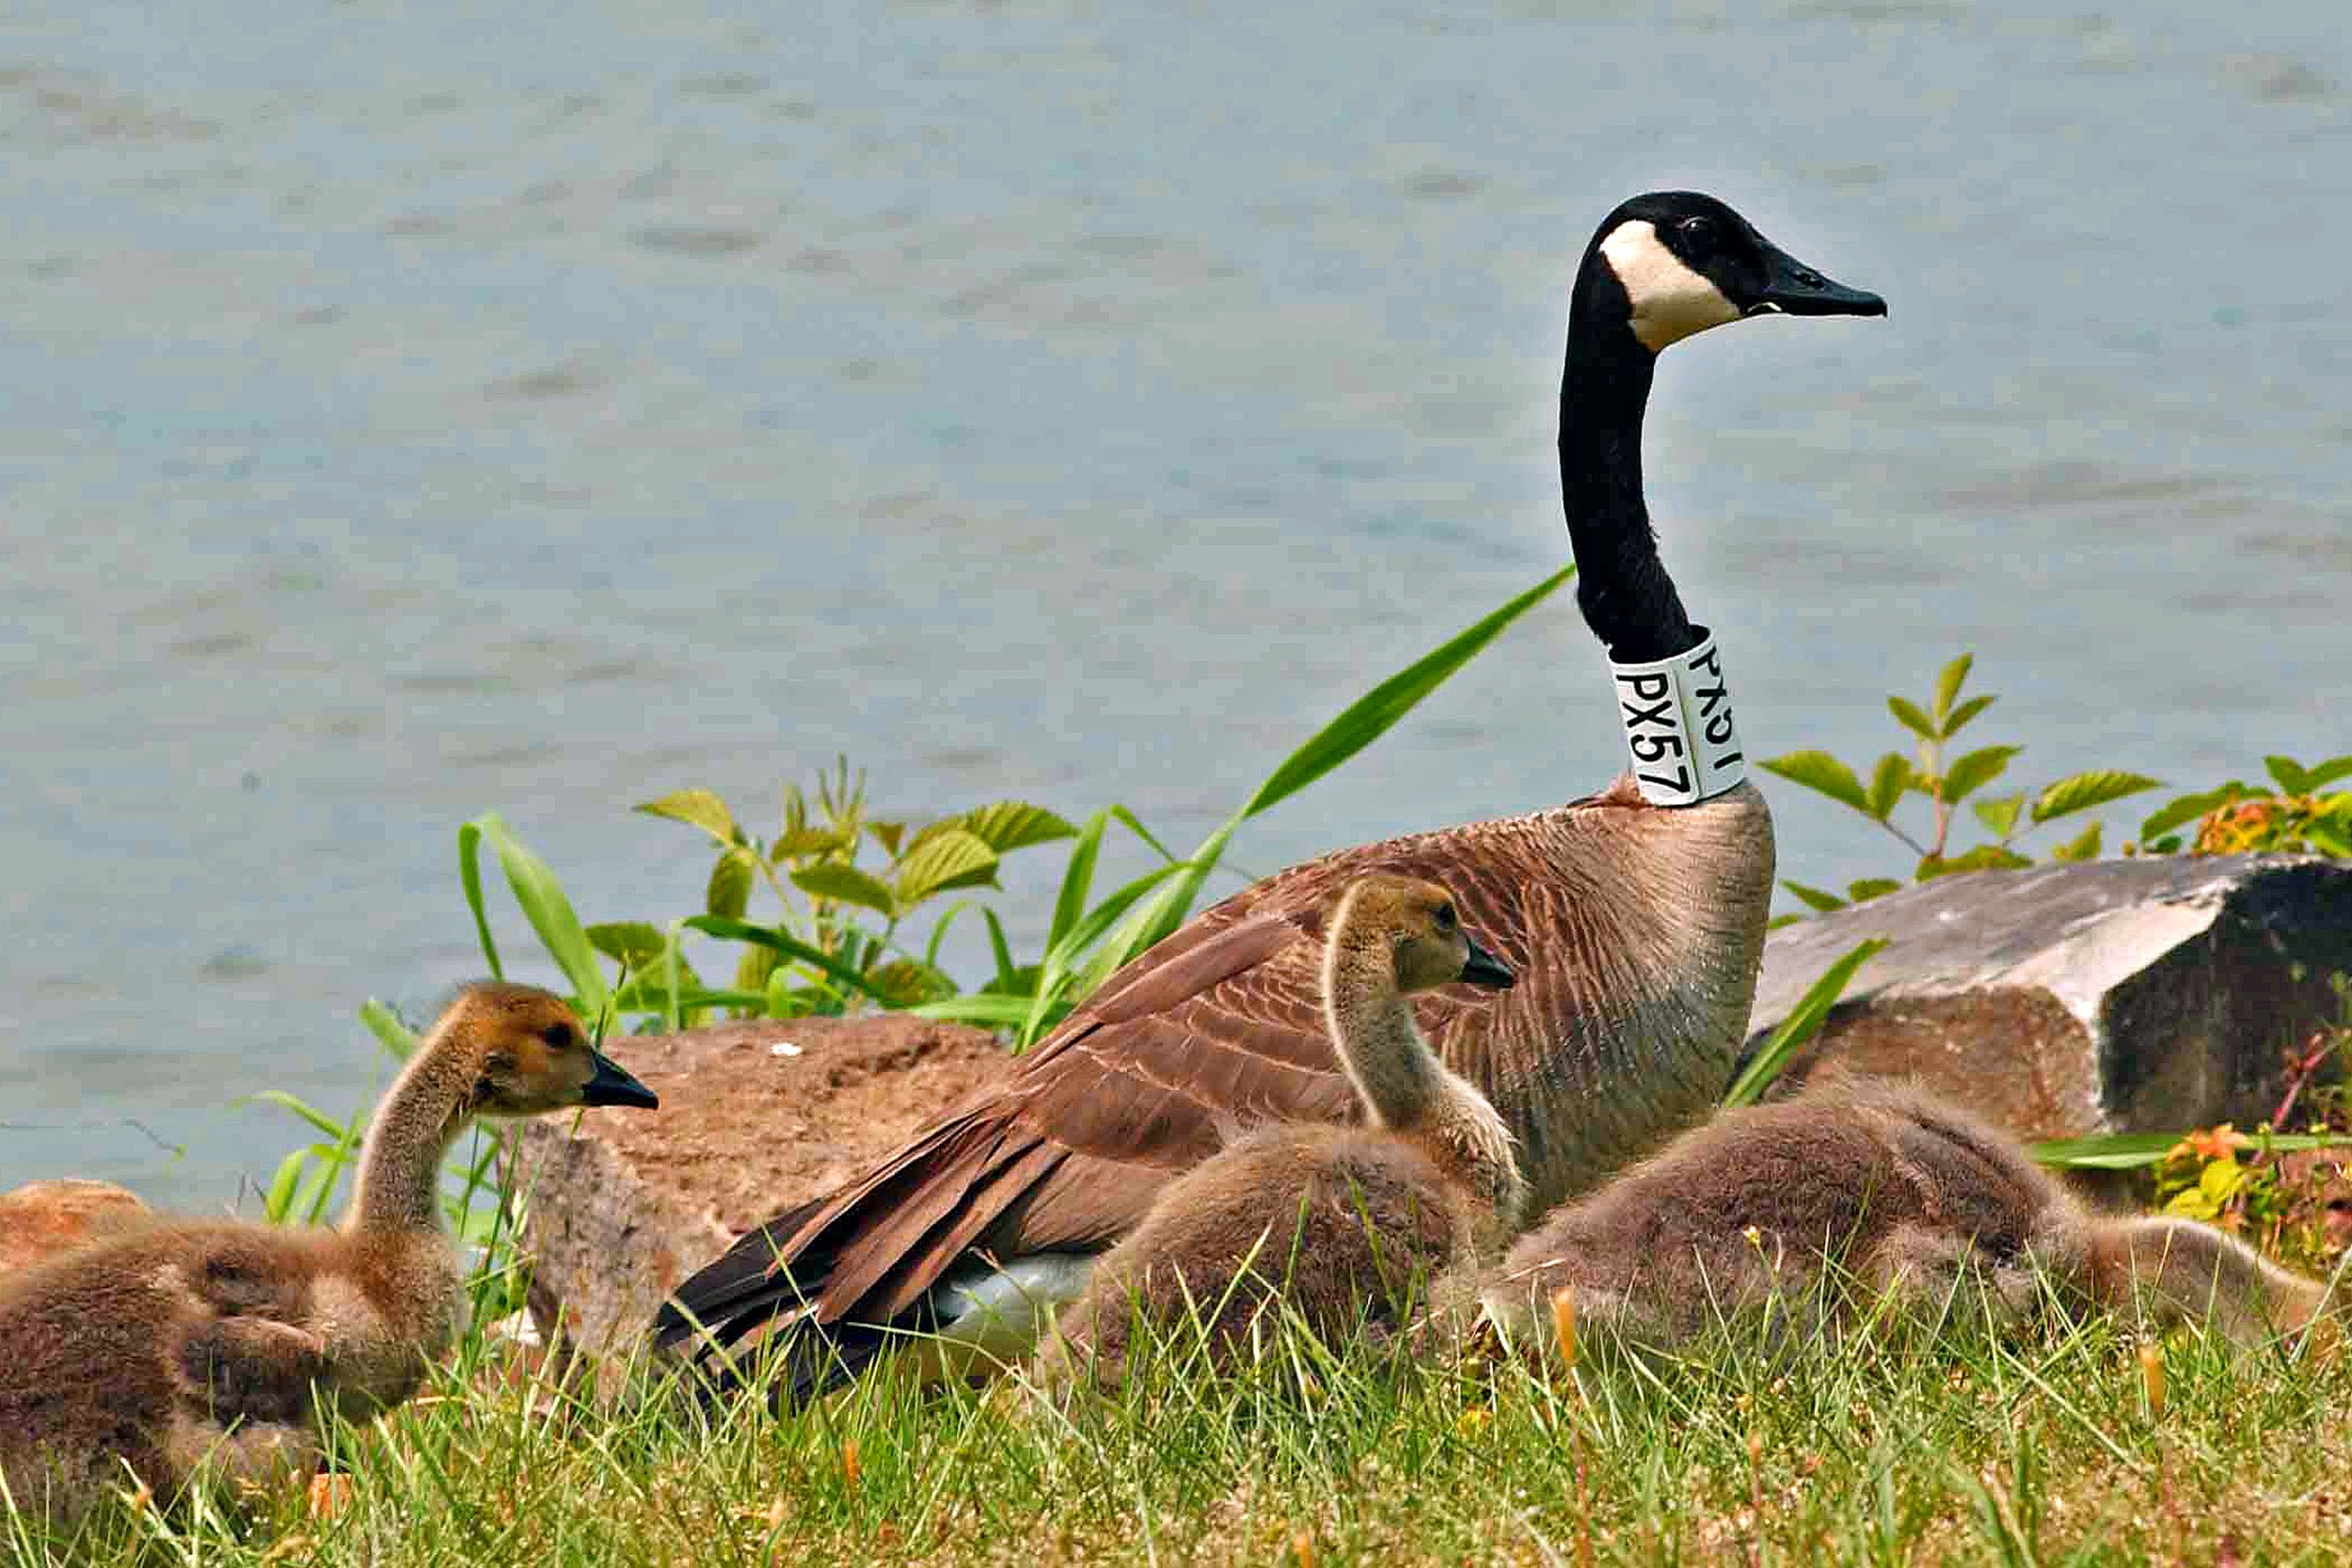 Migratory birds such as these Canada geese use bodies of water like lake Dardanelle as rest stops along their journey.